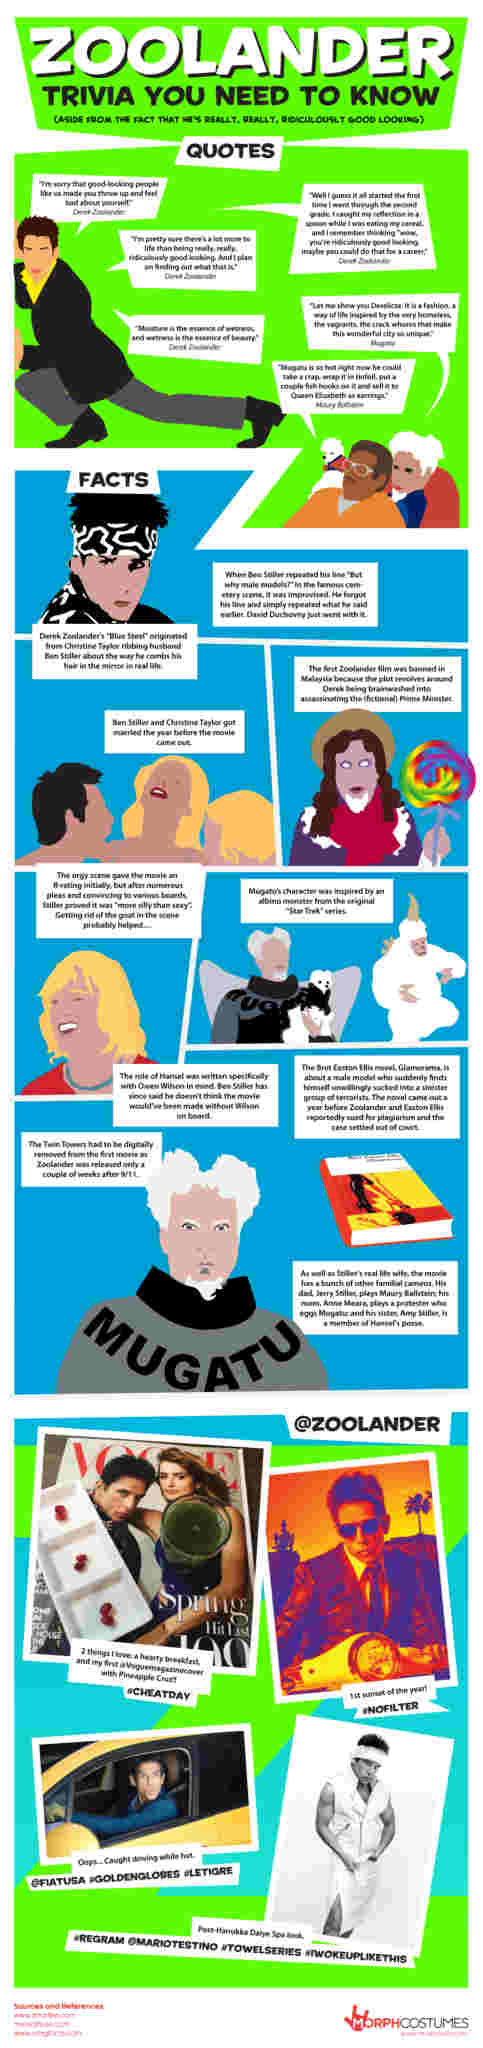 Zoolander-Trivia-You-Need-to-Know-Infographic